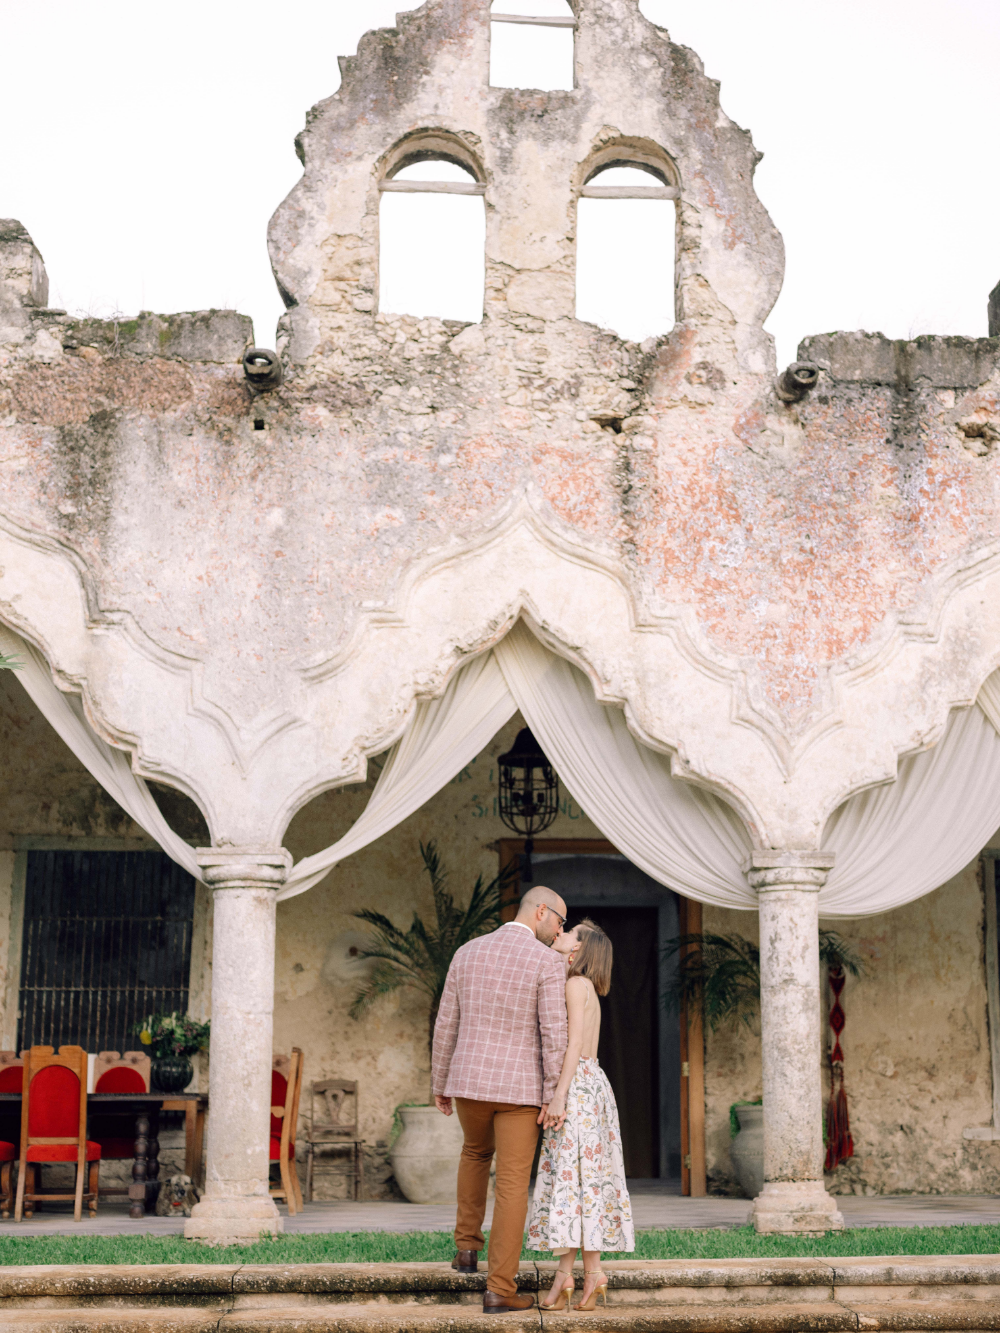 Influencer Stephanie Hill's Guide to Mastering Engagement Photos -  Stephanie Hill of The Style Bungalow took her engagement photos with KT Merry in Mérida, Mexico. H - #Engagement #EngagementPhotosclassy #EngagementPhotosindian #EngagementPhotoswoods #formalEngagementPhotos #guide #Hills #Influencer #Mastering #naturalEngagementPhotos #Photos #plussizeEngagementPhotos #rusticEngagementPhotos #Stephanie #whattowearforEngagementPhotos